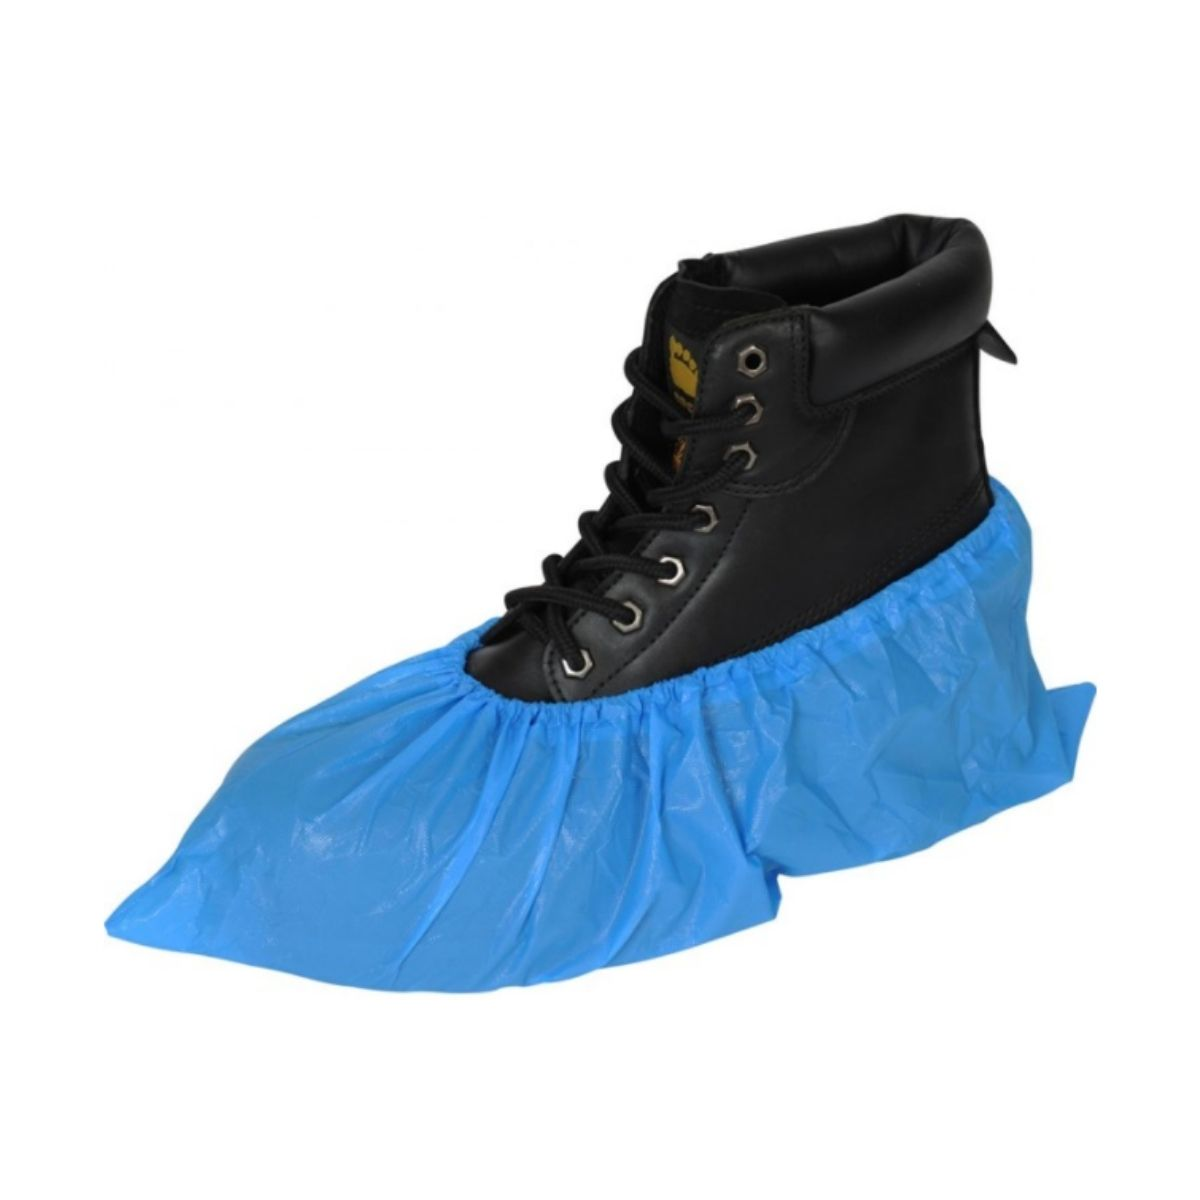 DC6812 Disposable Blue Overshoes - Pack of 100 (50 Pairs)